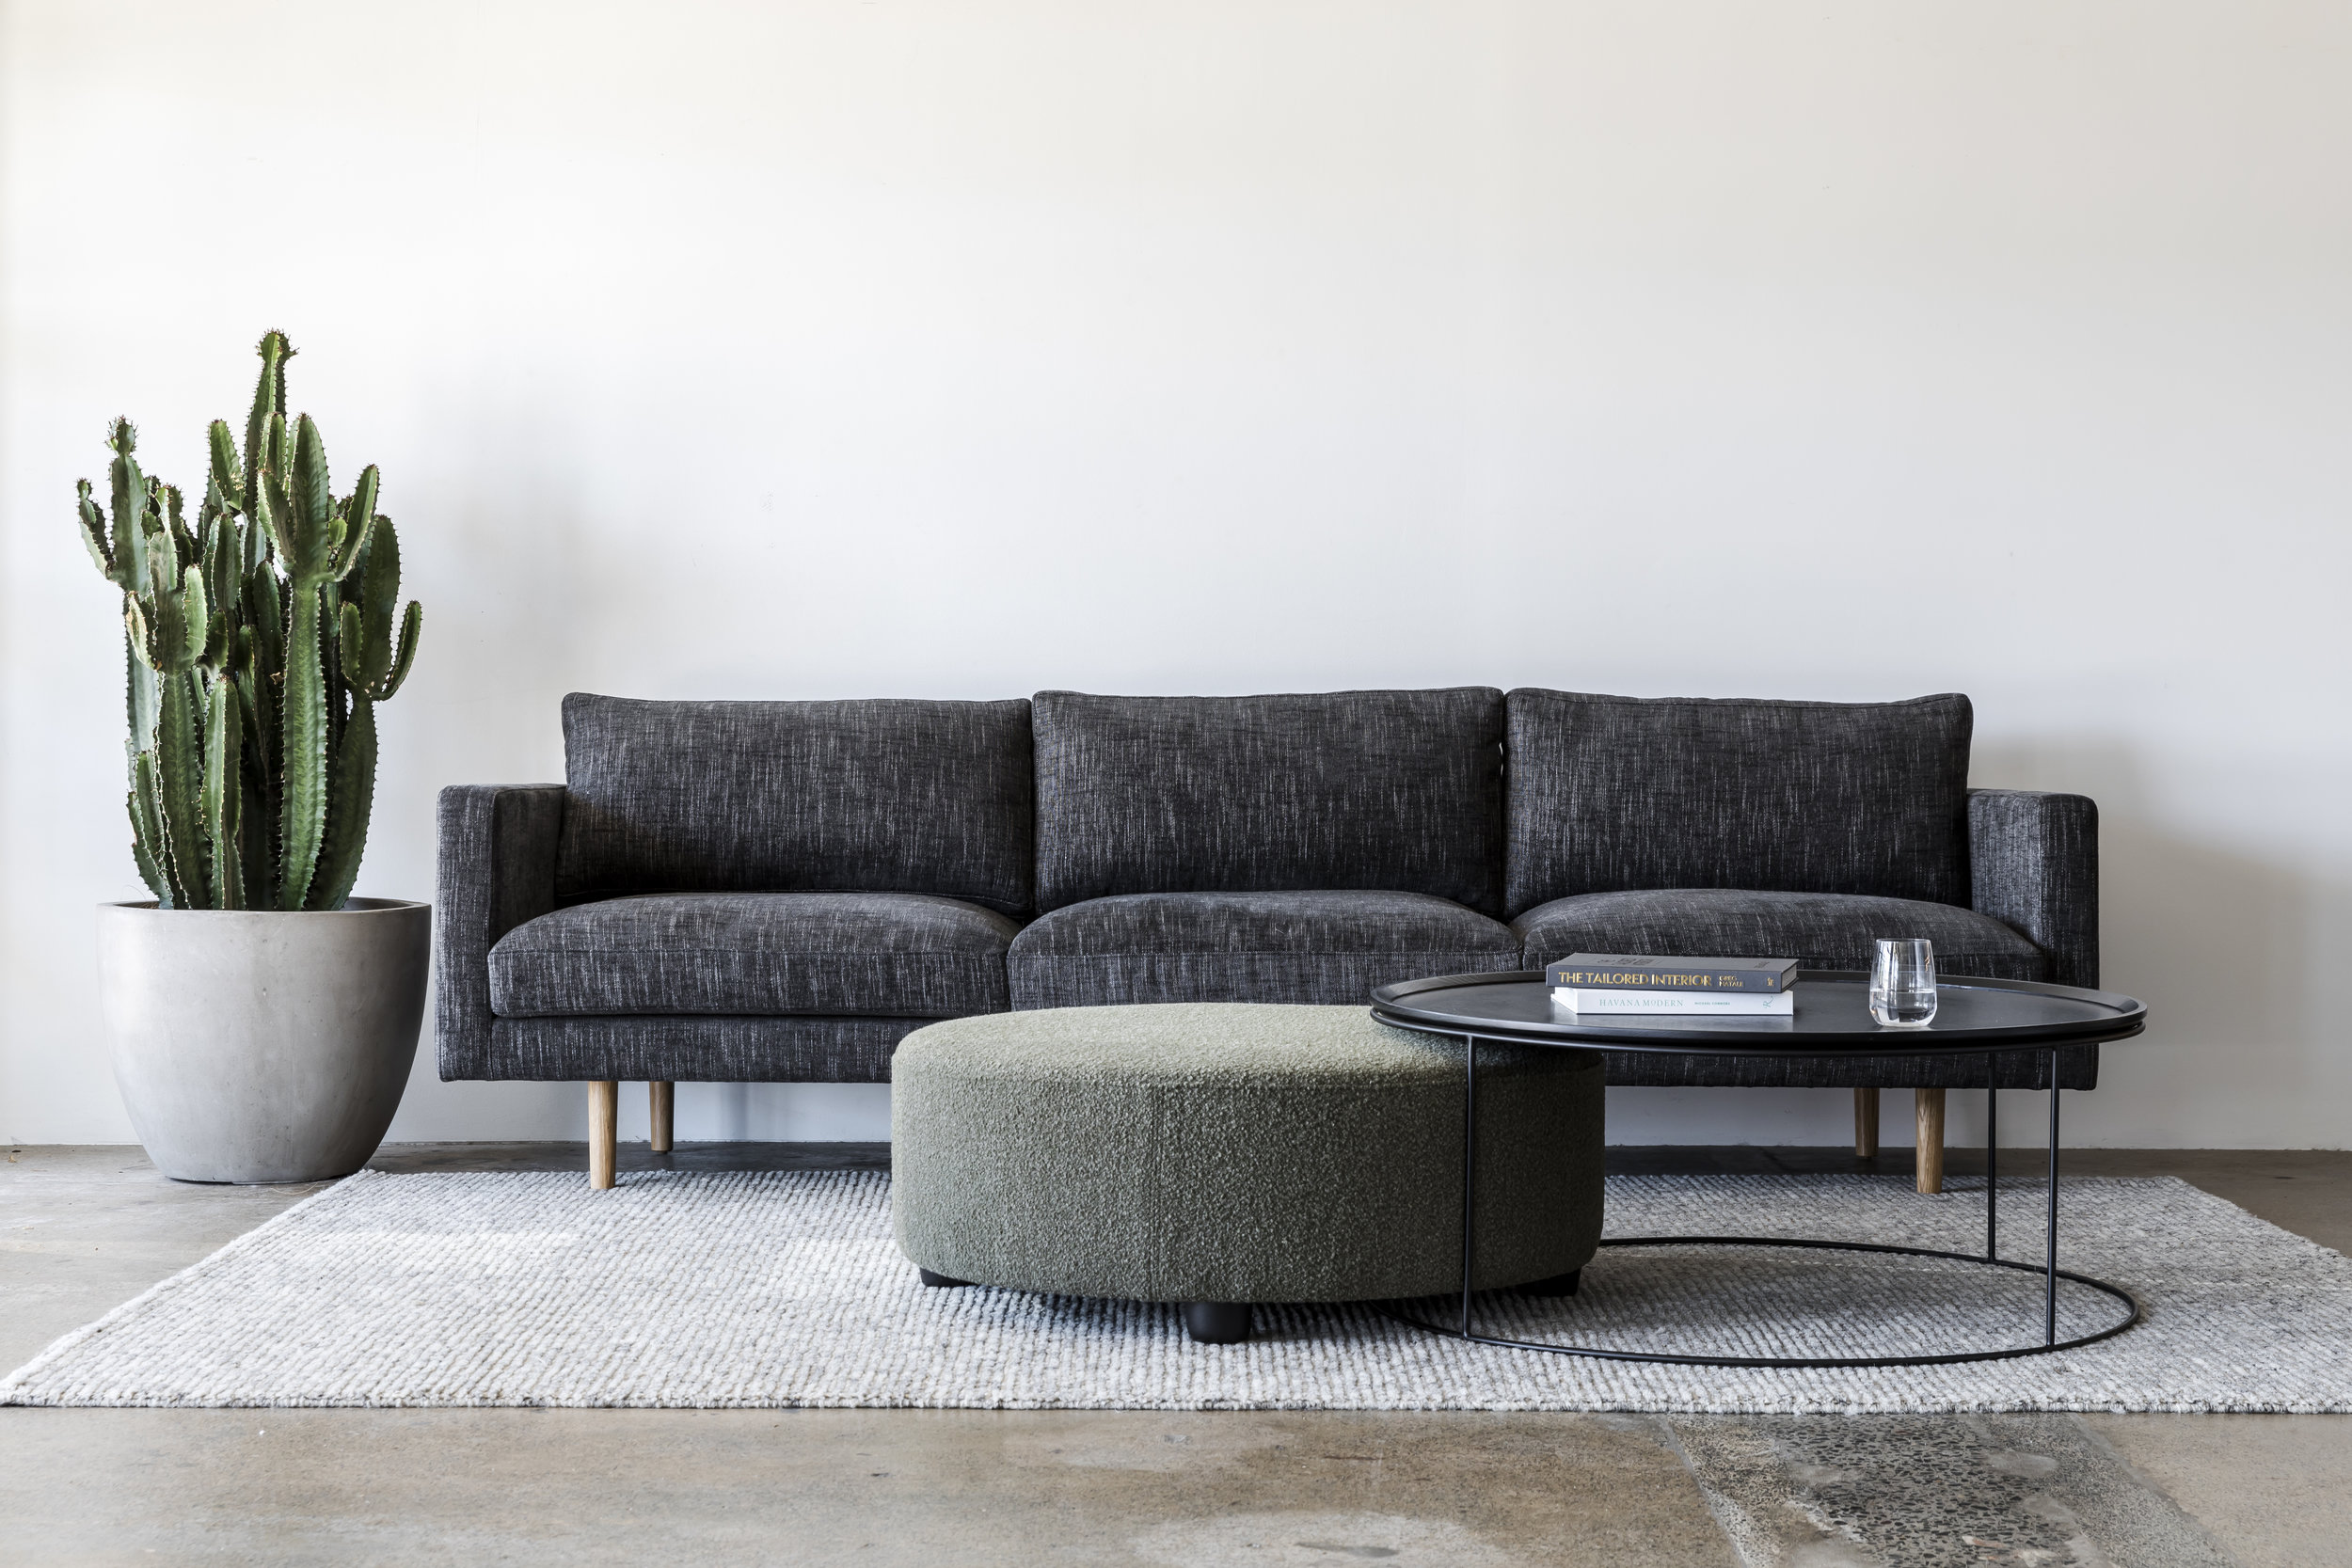 our bespoke collection service. - we have 4 standard sofas within our bespoke collection that can be customised to suit the dimensions and aesthetic of your space.